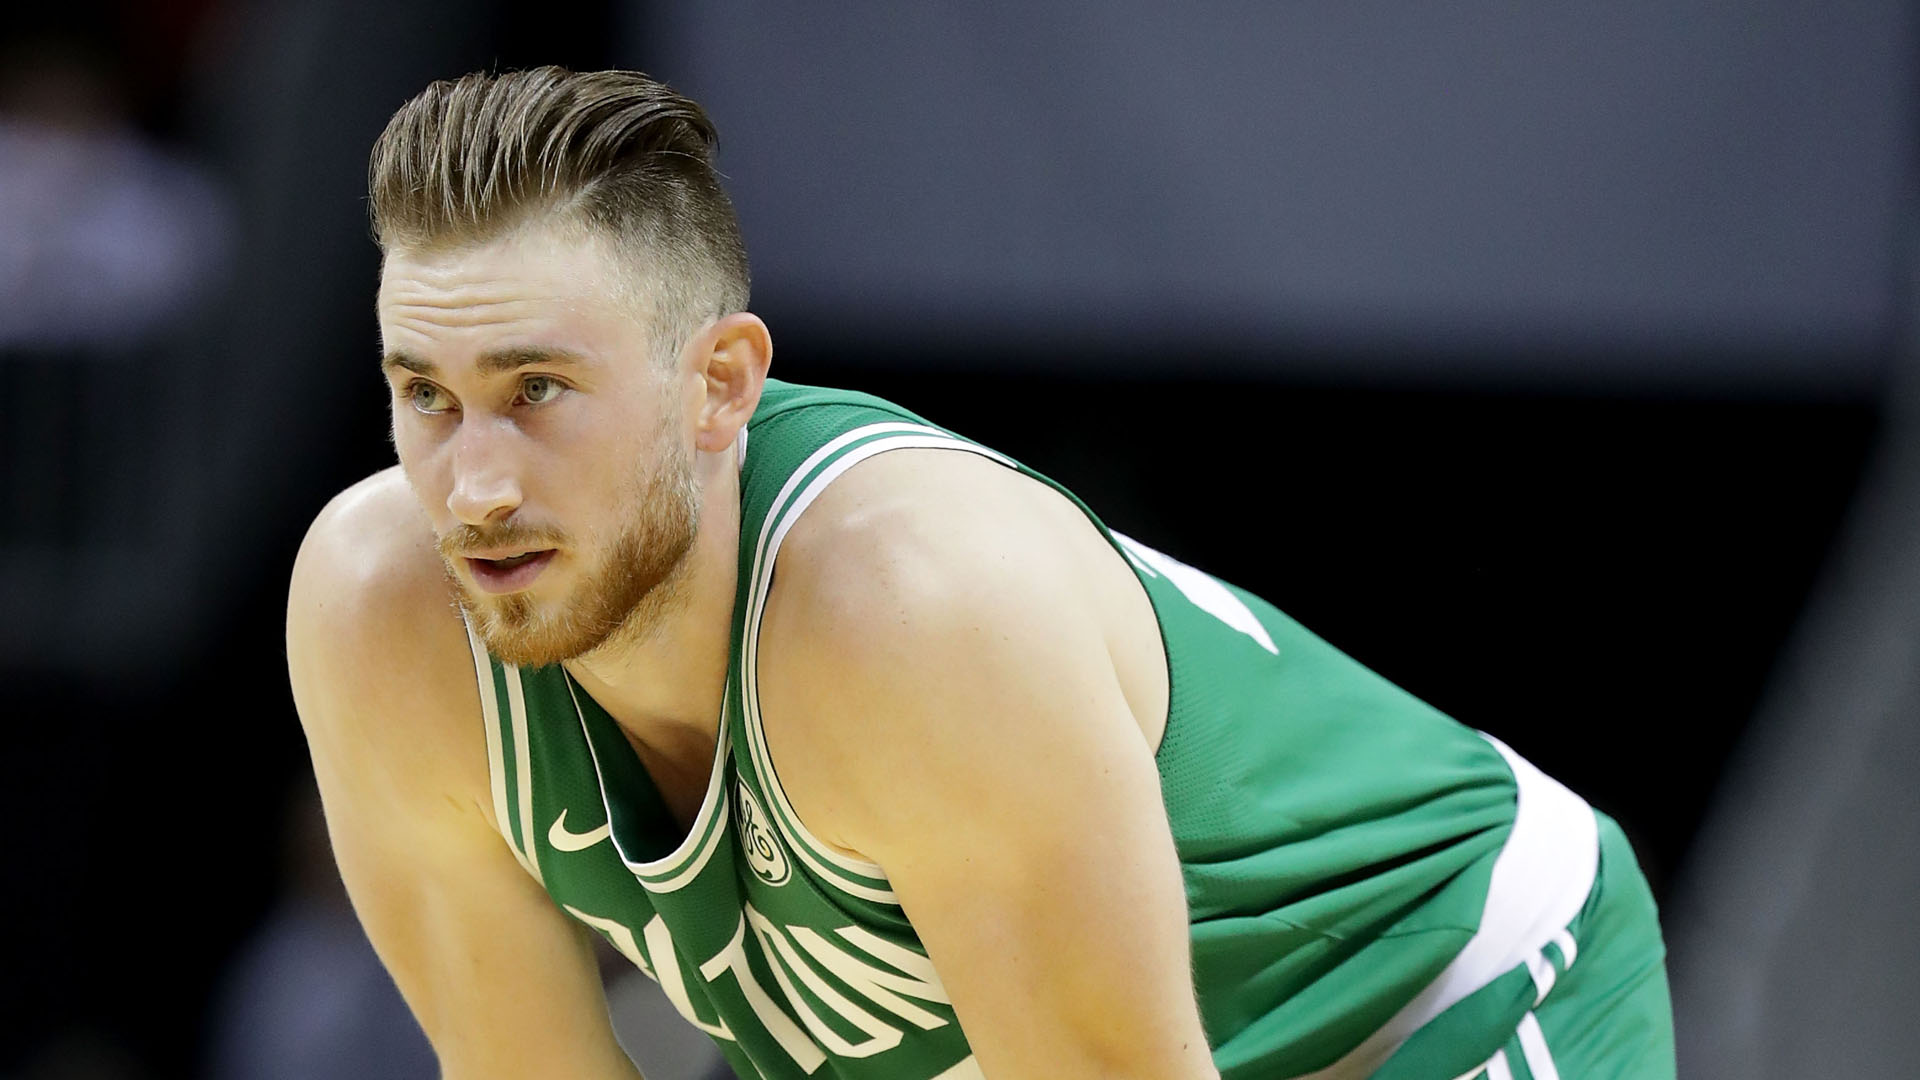 Gordon Hayward on possible return this season: 'My mind is open to that'